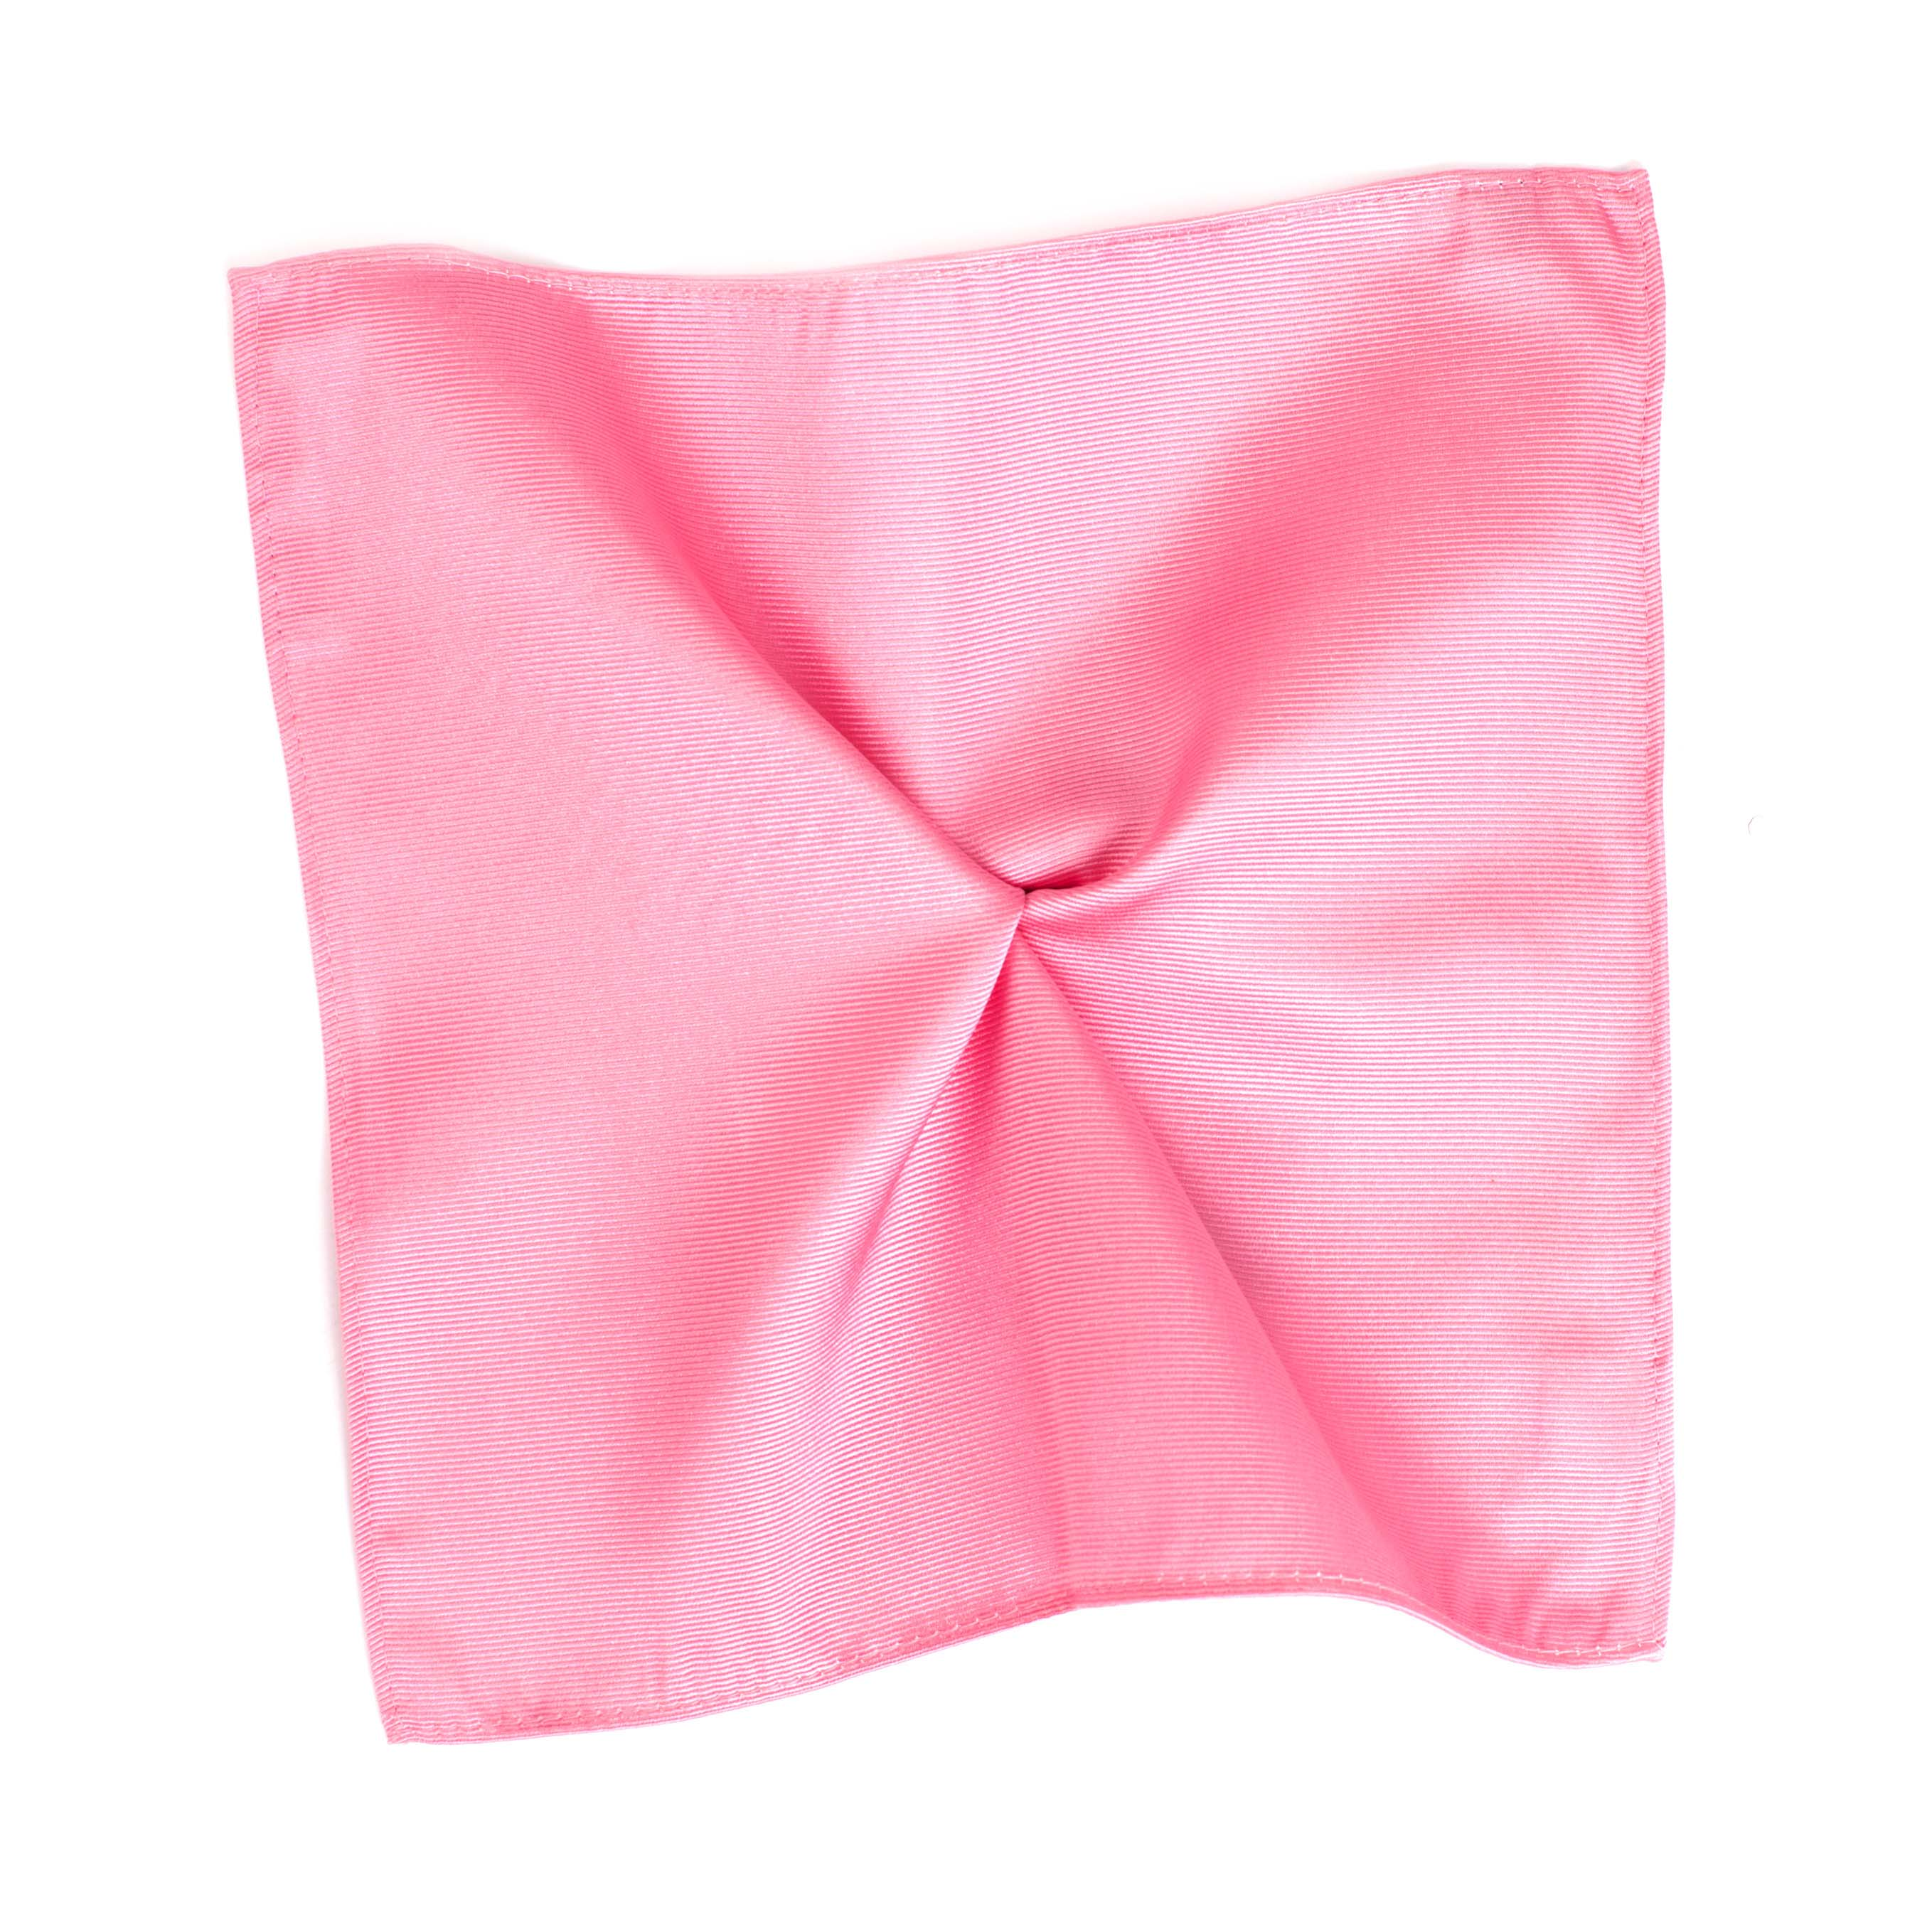 Classic pink ribbed pocket square